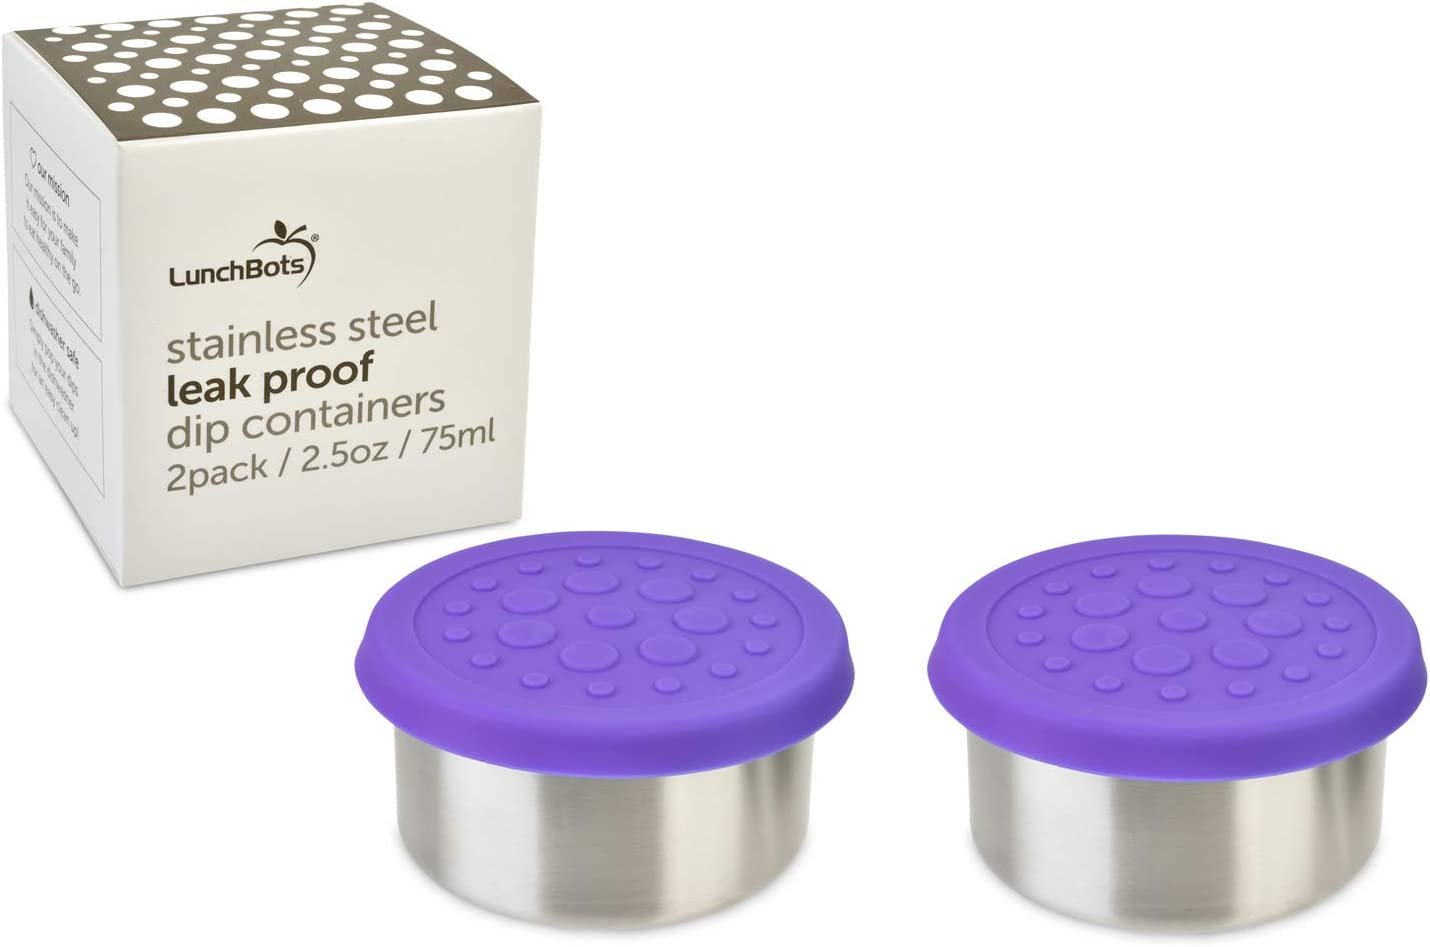 LunchBots 2.5 oz Leak Proof Dips Containers - Set of 2 (2.5 oz) - Spill Proof in Bags and Bento Boxes - Food Grade Stainless Steel with Silicone Lids - Dishwasher Safe - Purple